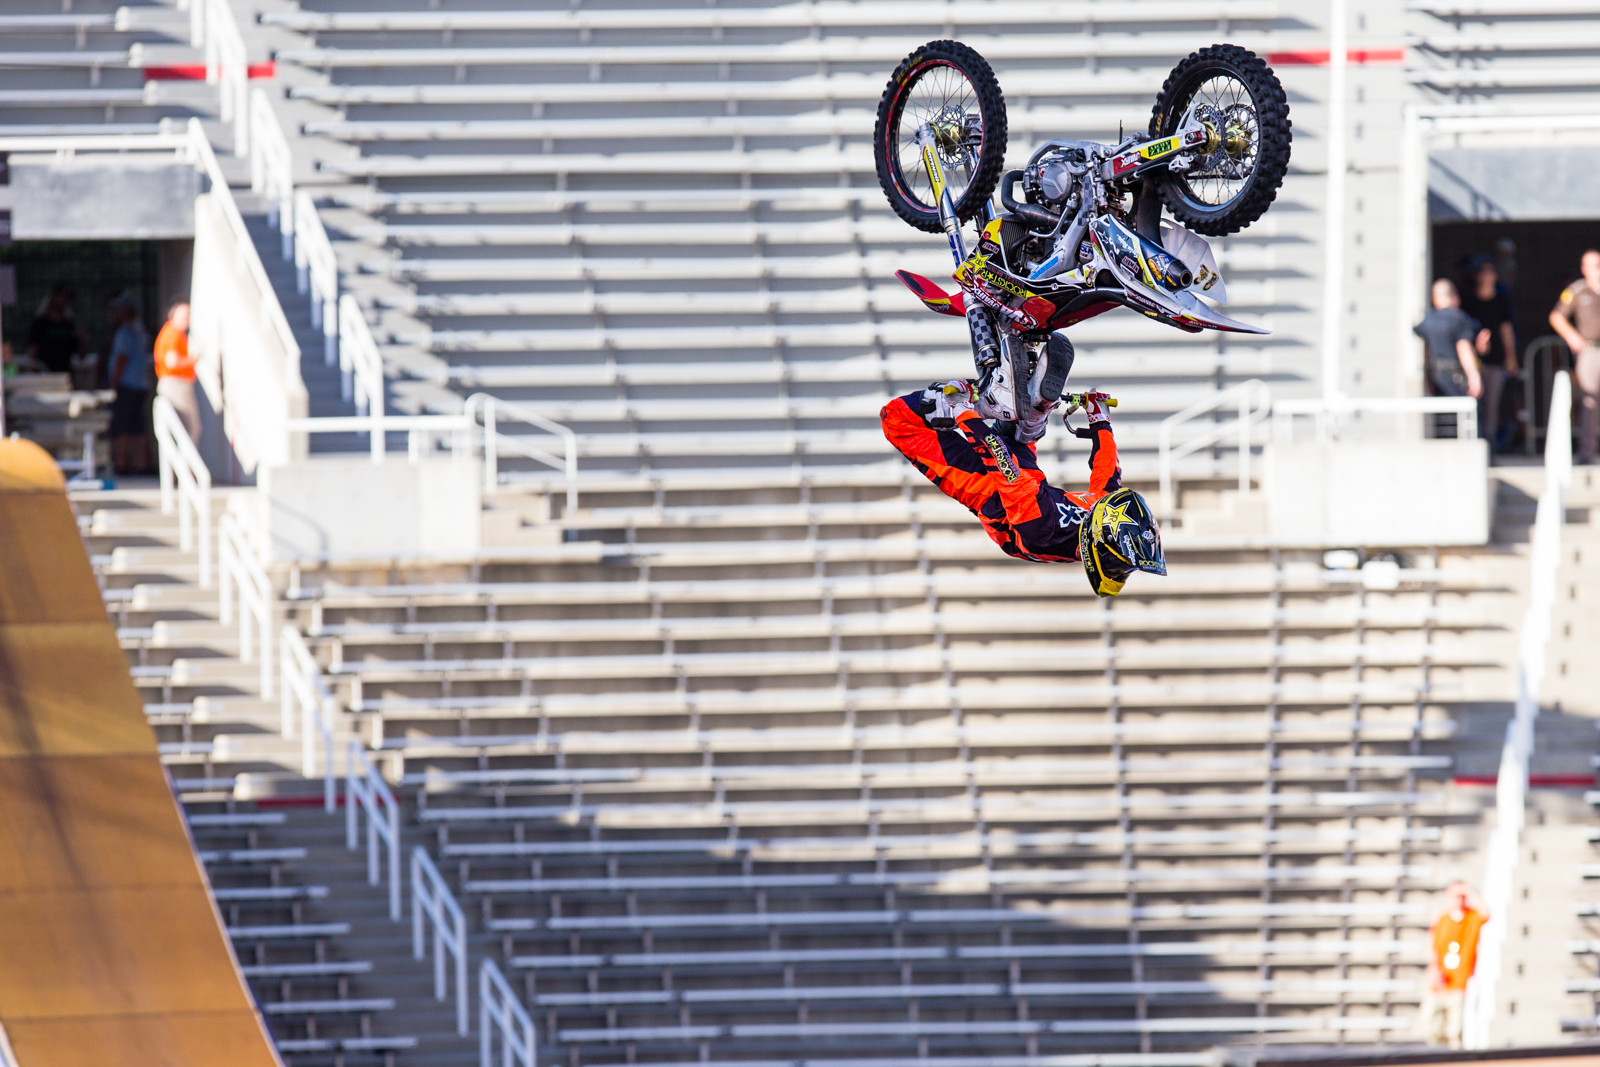 Javier Villegas - 2016 Nitro World Games: FMX and Best Trick Finals Gallery - Motocross Pictures - Vital MX